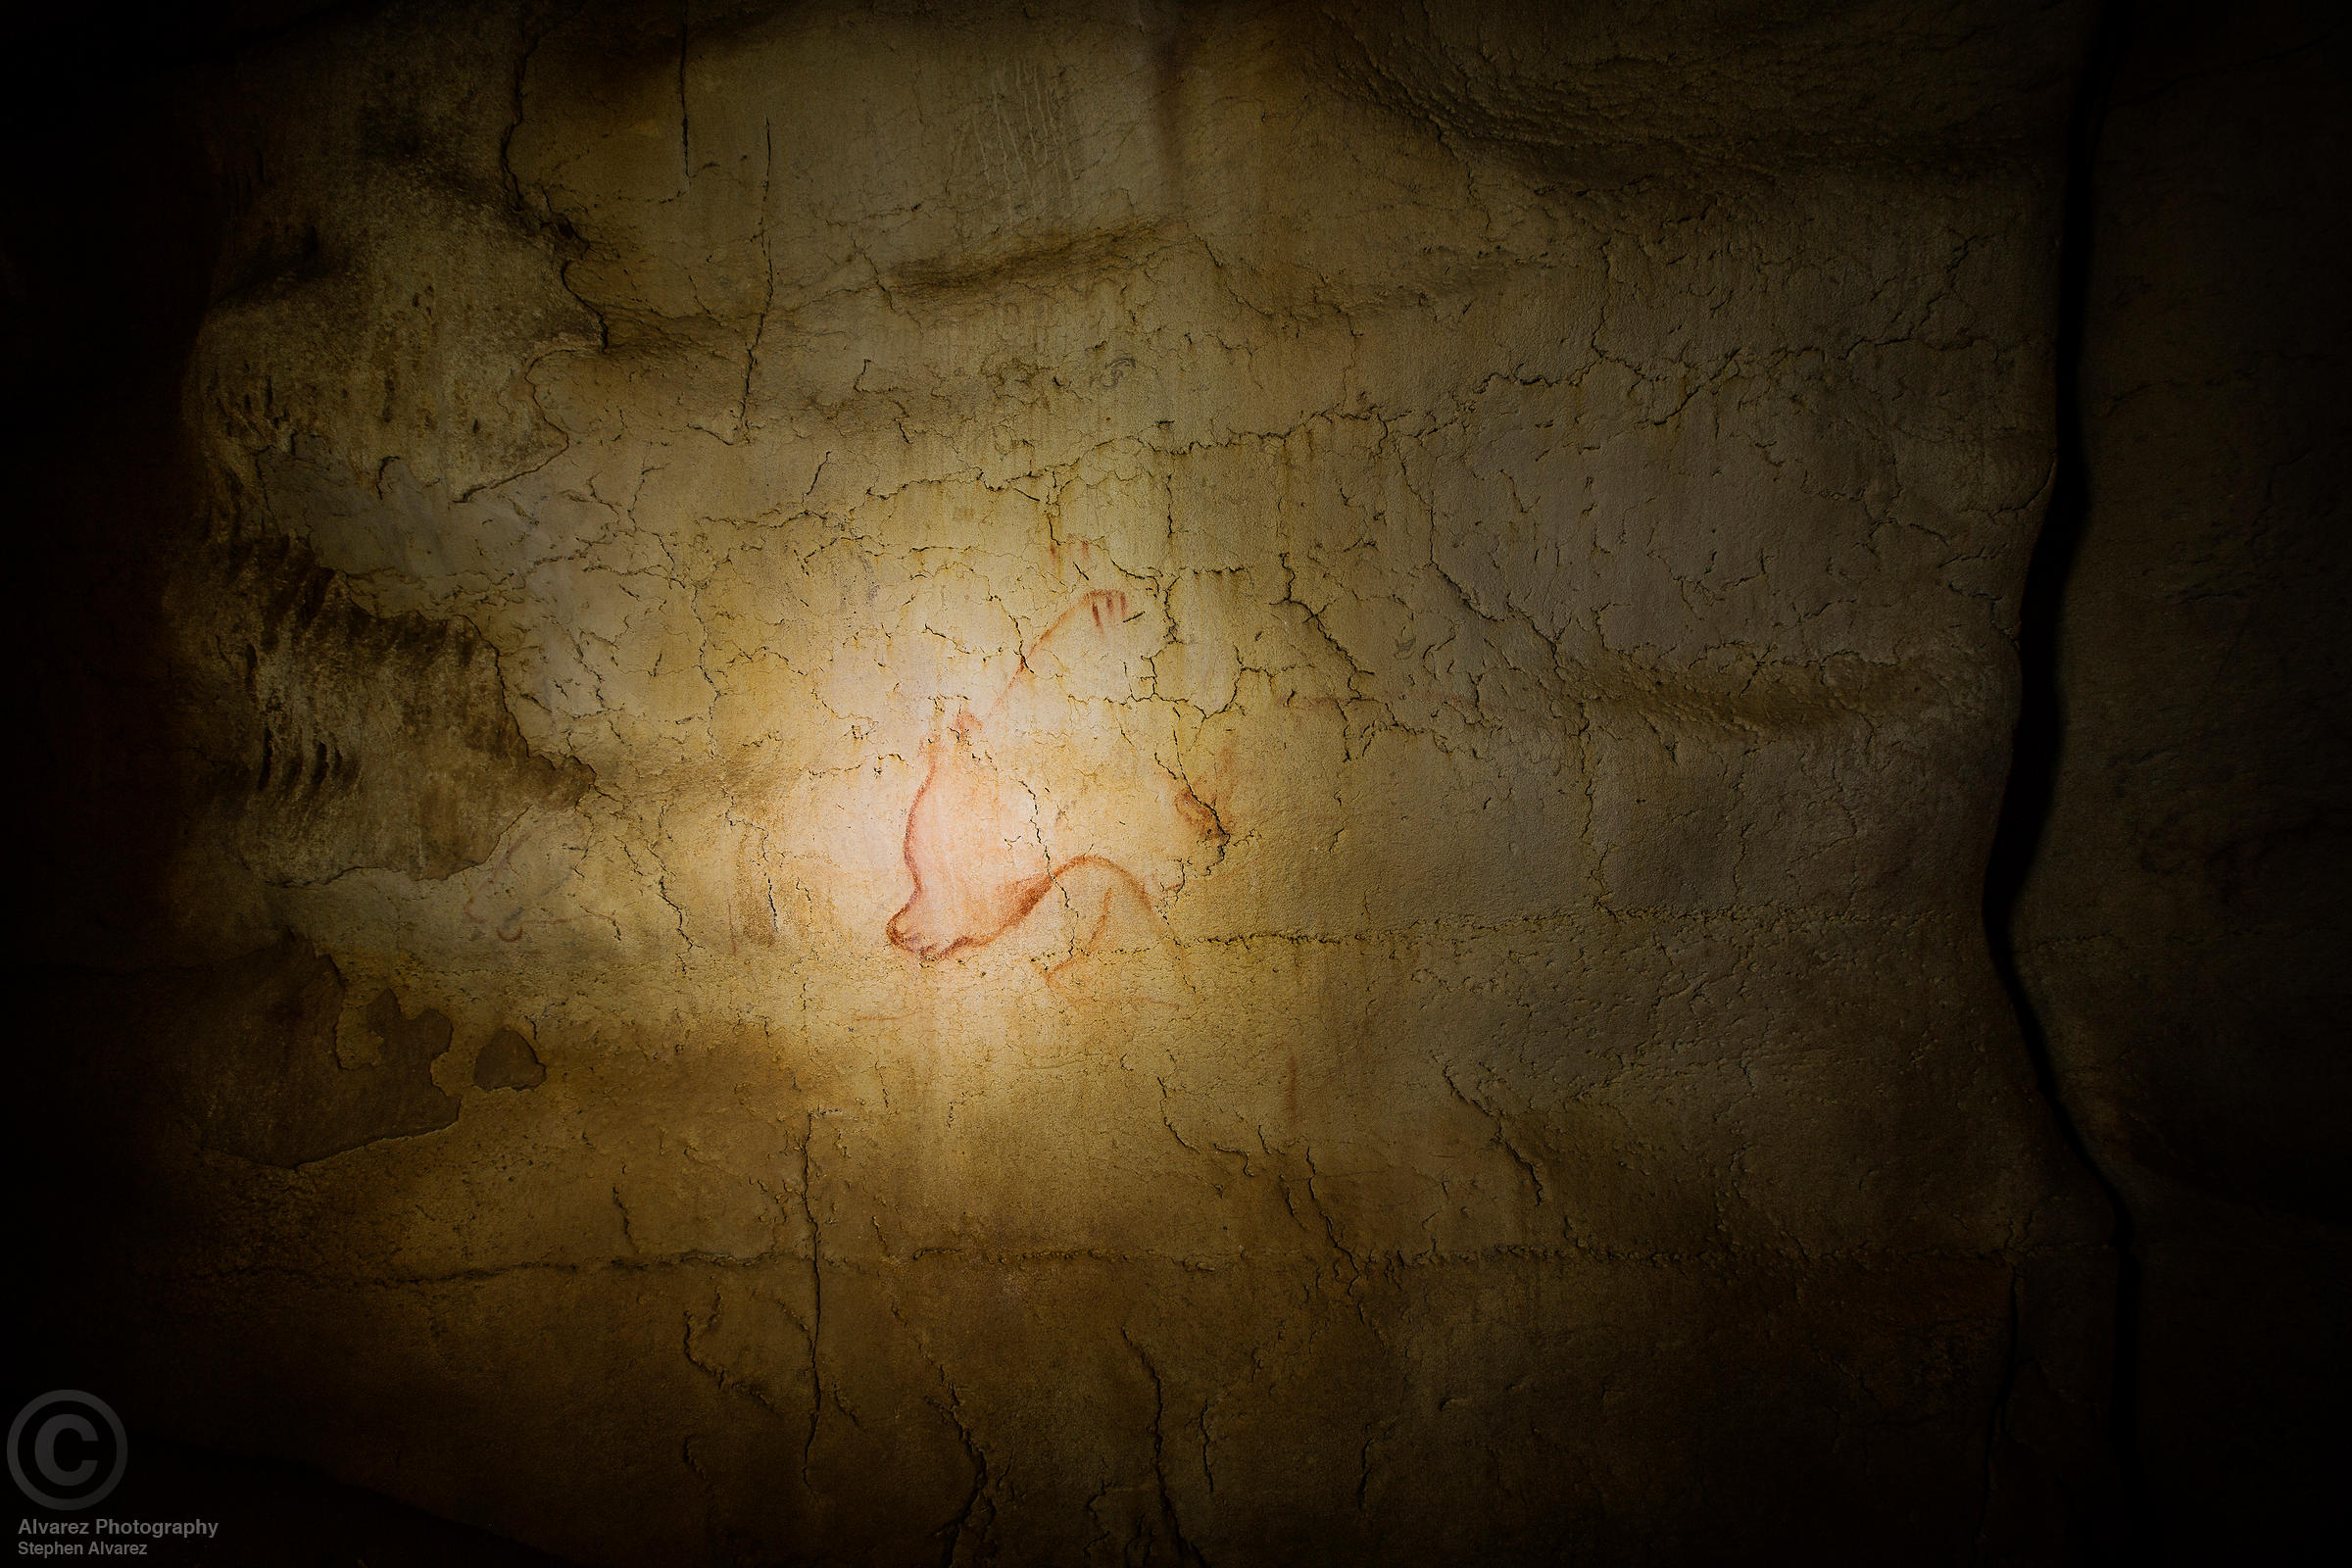 Cave bear drawn in red ochre on the wall of Chauvet Cave, Ardeche, France